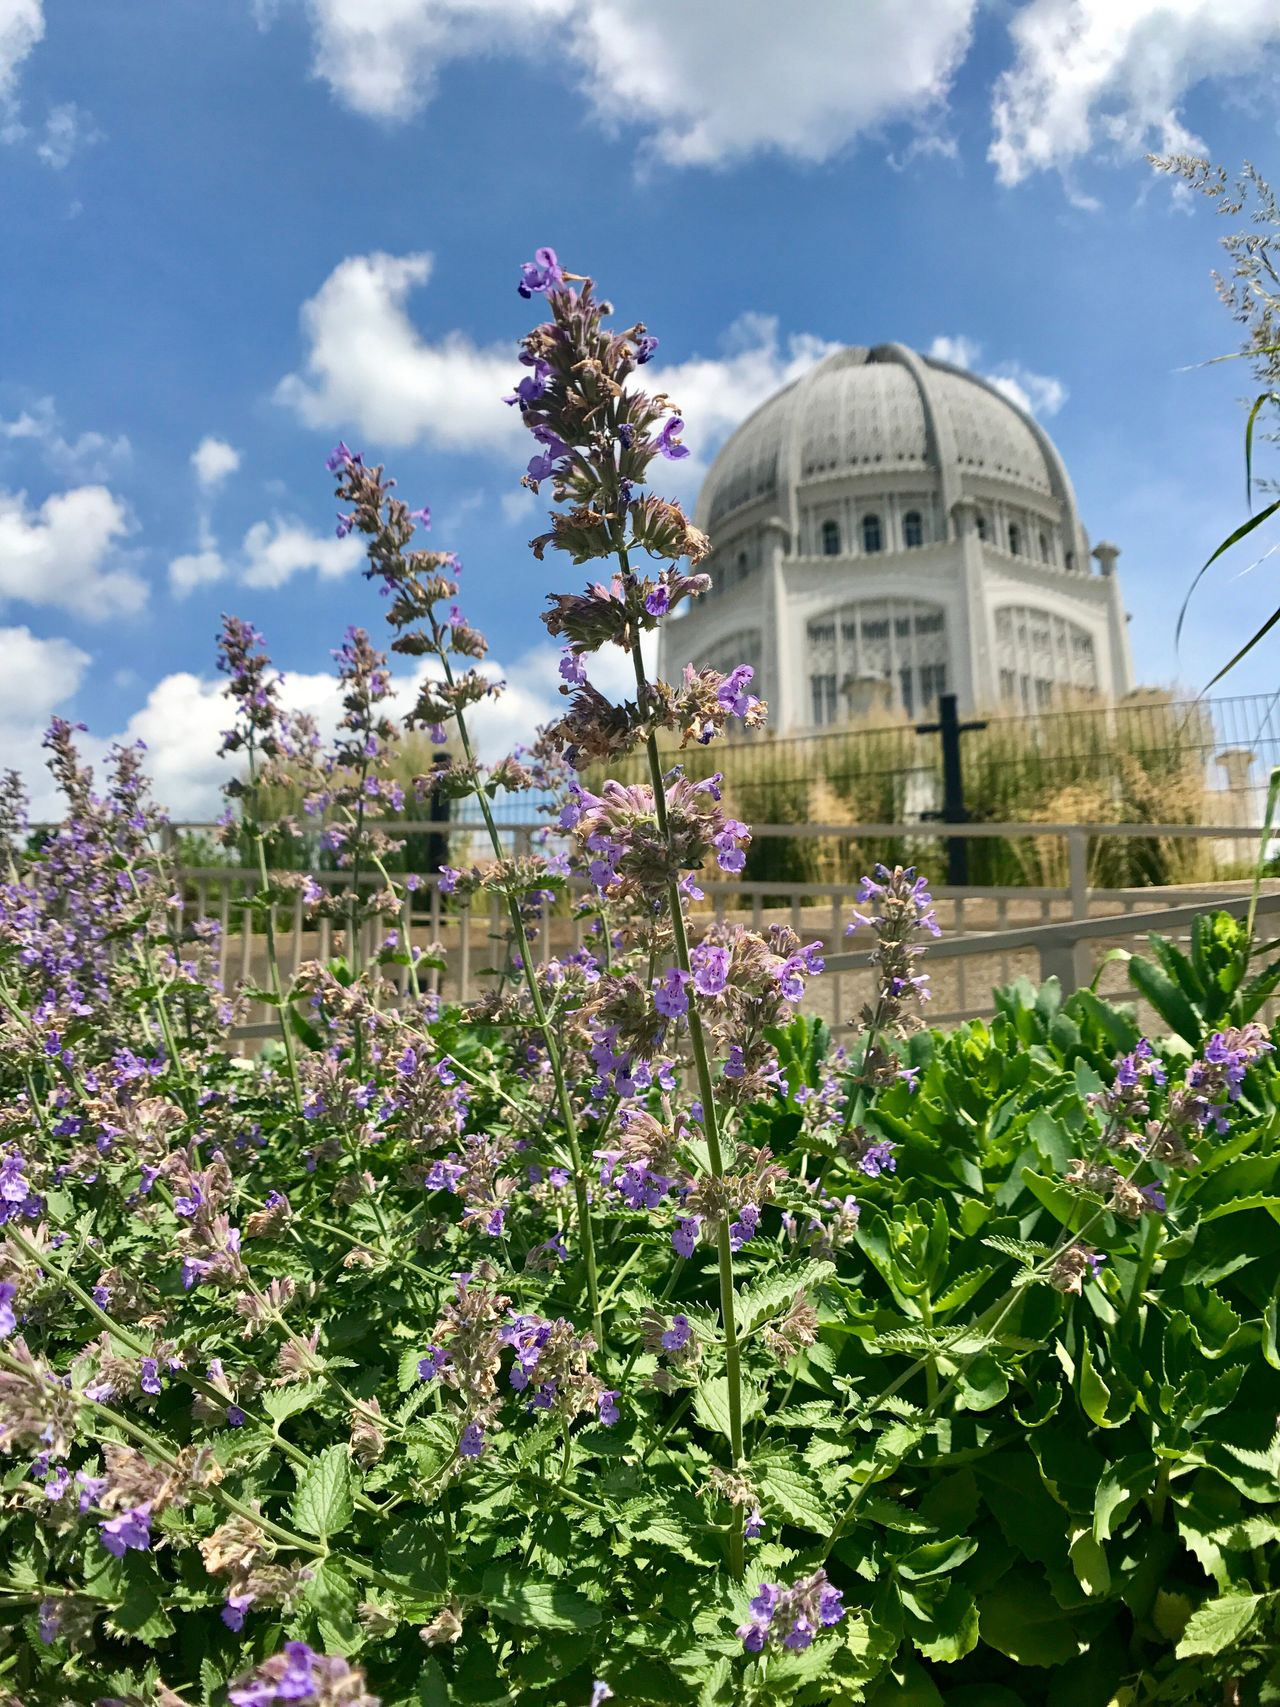 Baha'i House Worship, IL Flower Dome Built Structure Architecture Cloud - Sky Plant Growth Day Fragility Building Exterior Sky Low Angle View Nature No People Outdoors Tree Freshness